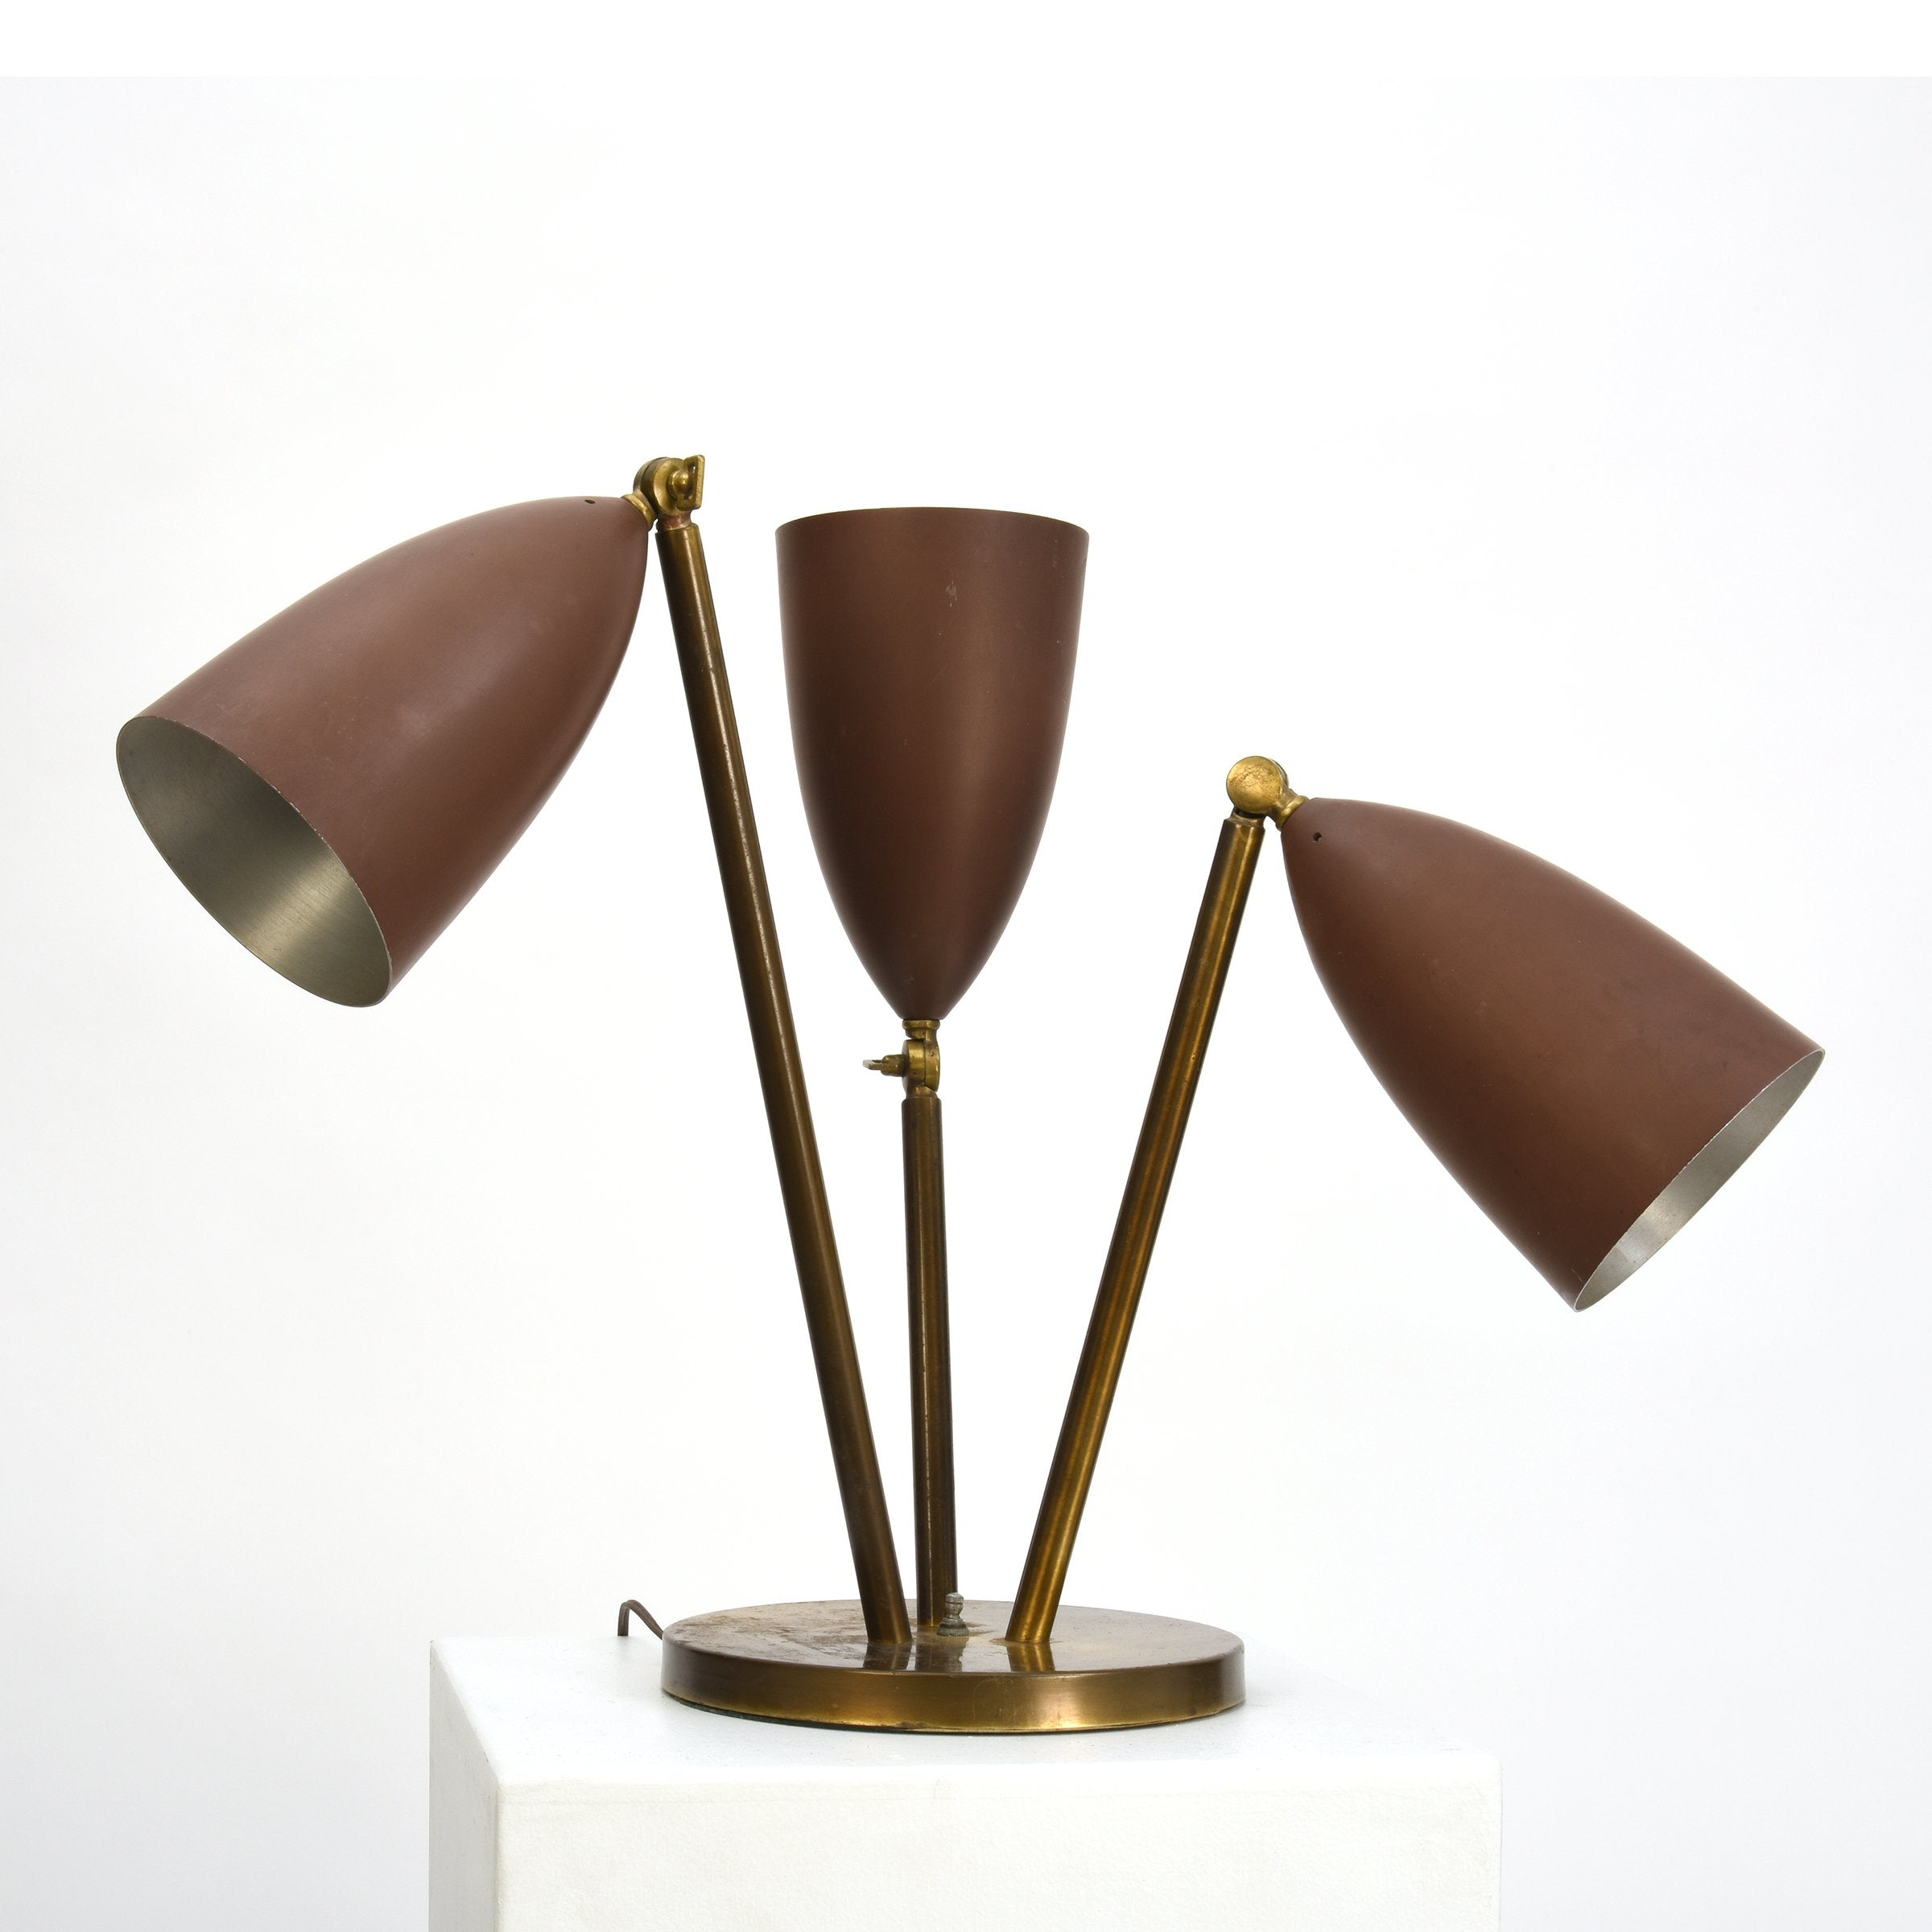 Rare Greta Magnusson Grossman Table Lamp with Adjustable Shades circa 1948